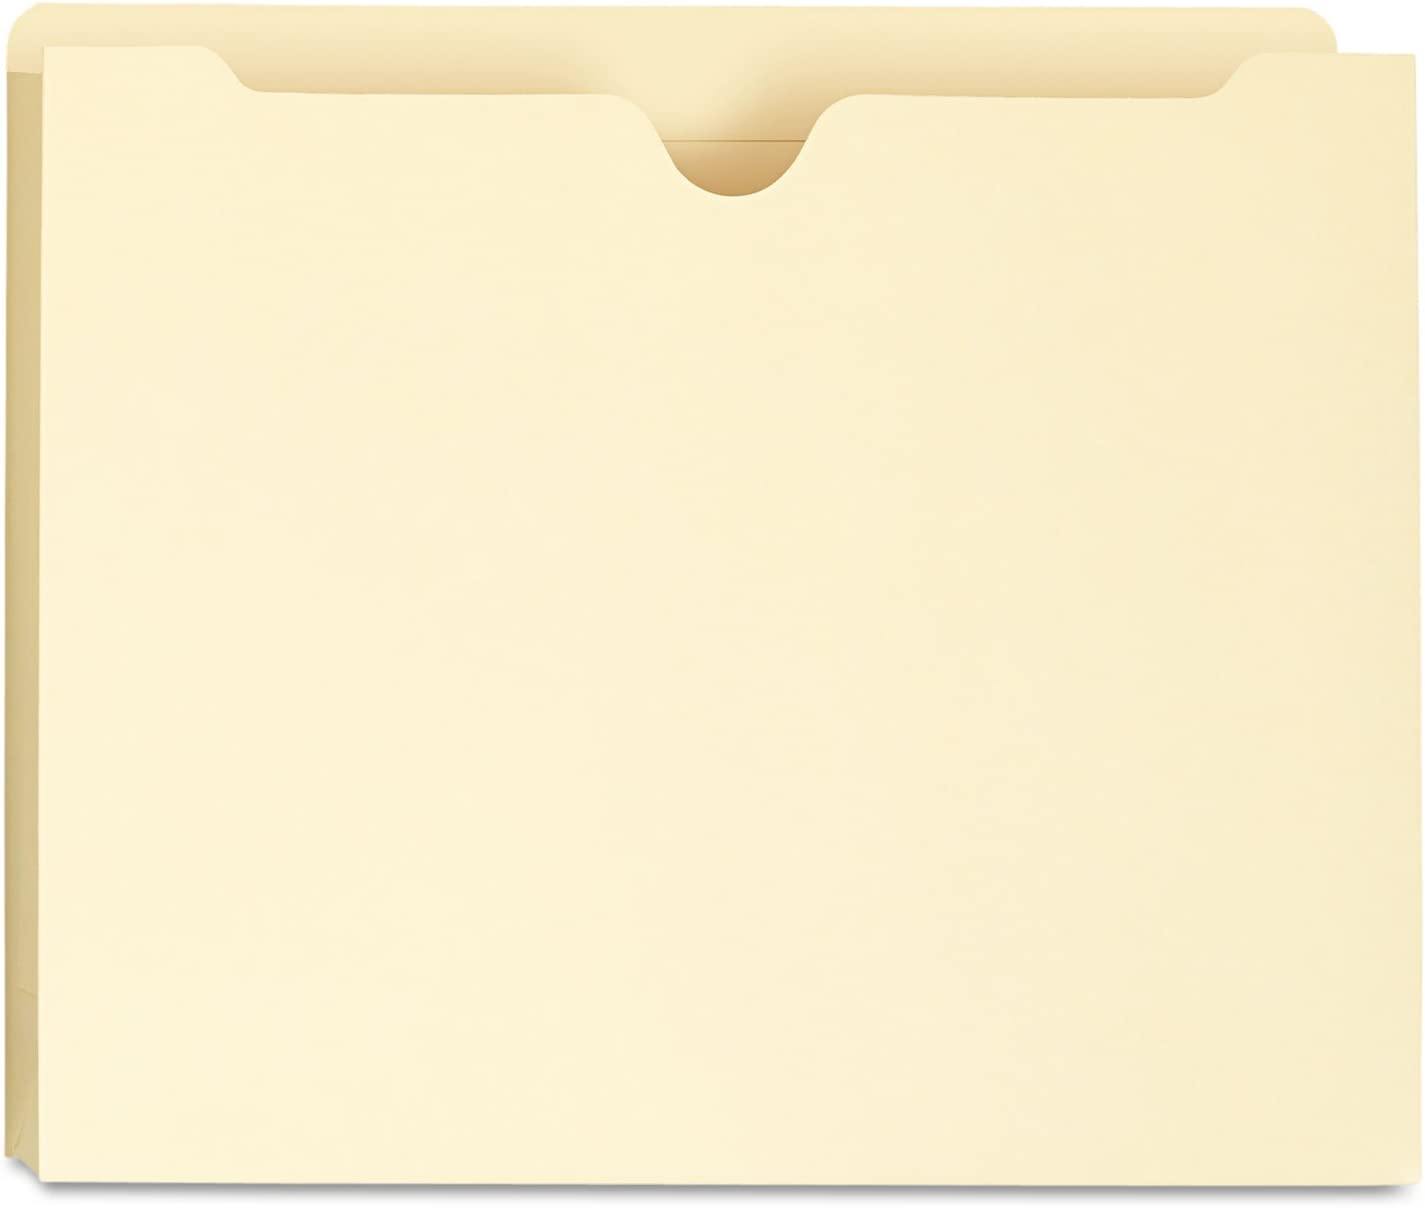 UNV73700 lowest Max 61% OFF price - Manila File Reinforced Tabs with Jackets